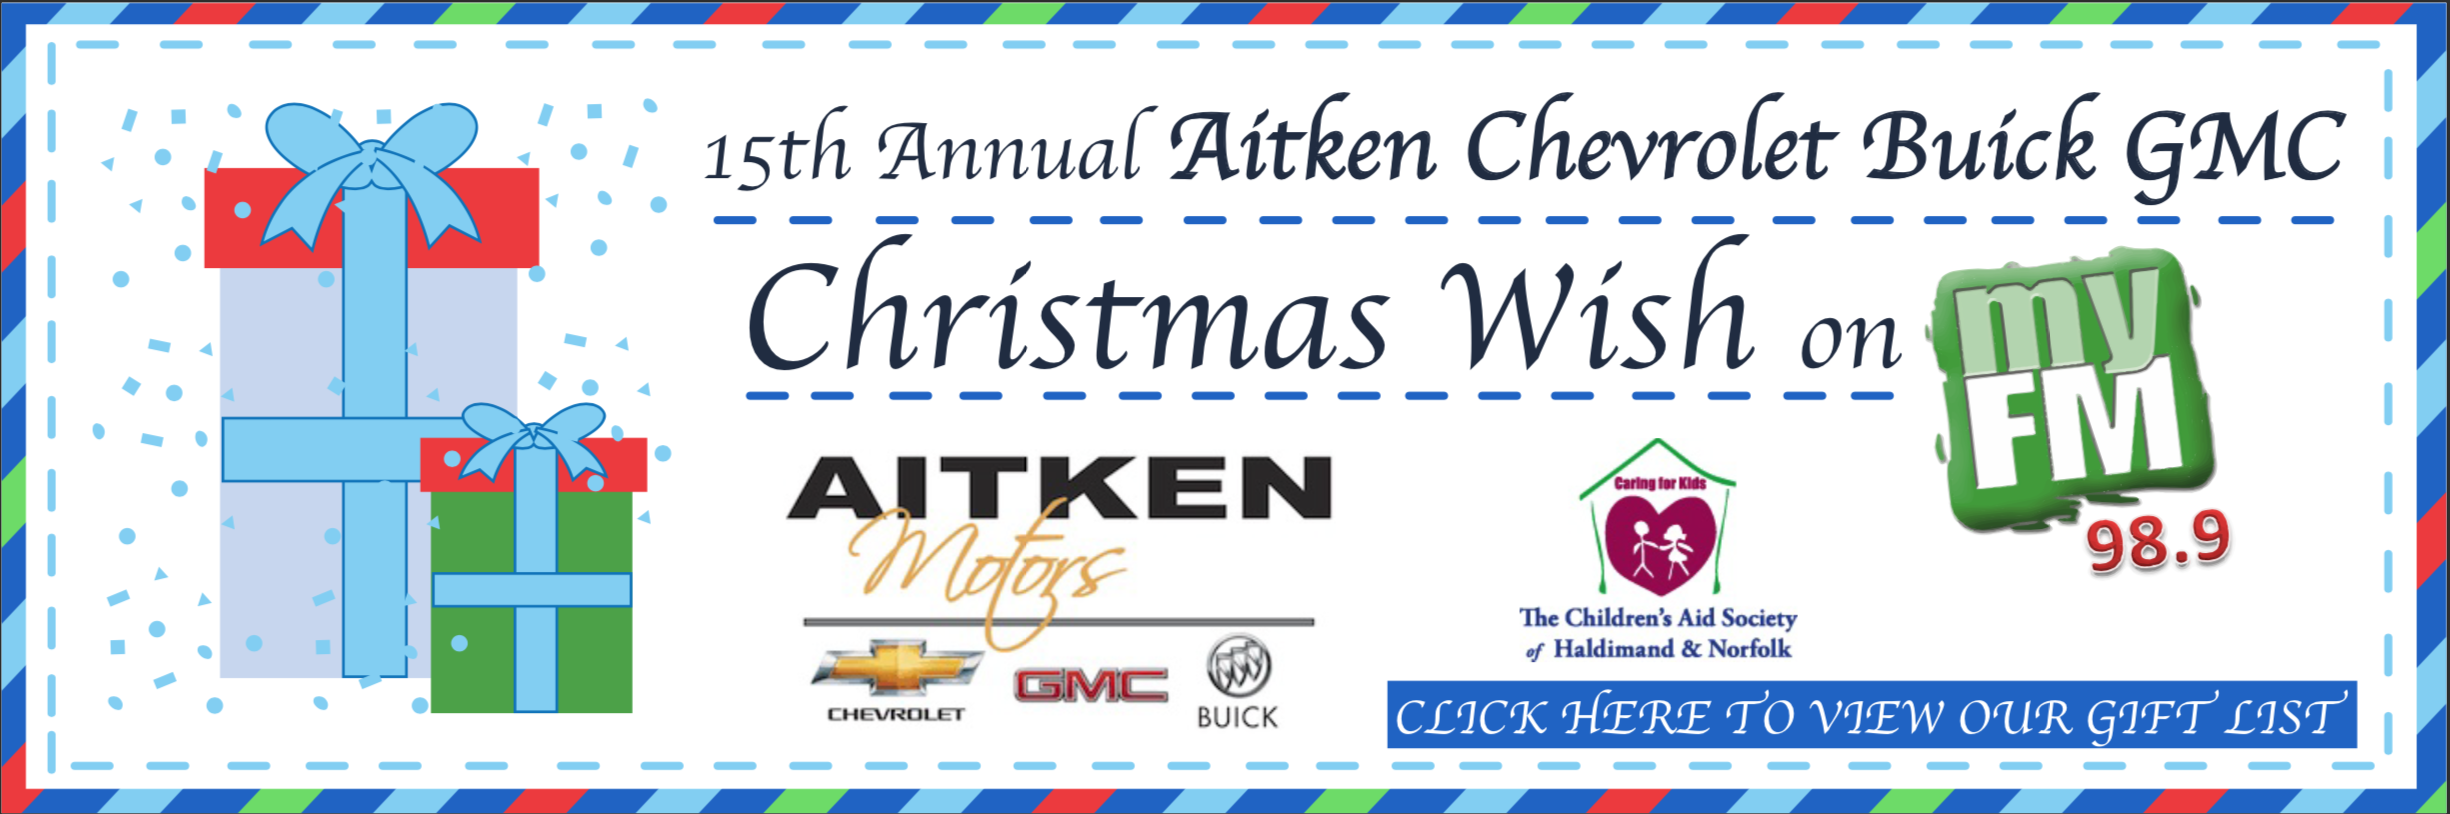 Feature: https://www.norfolktoday.ca/aitken-chevrolet-buick-gmc-christmas-wish/